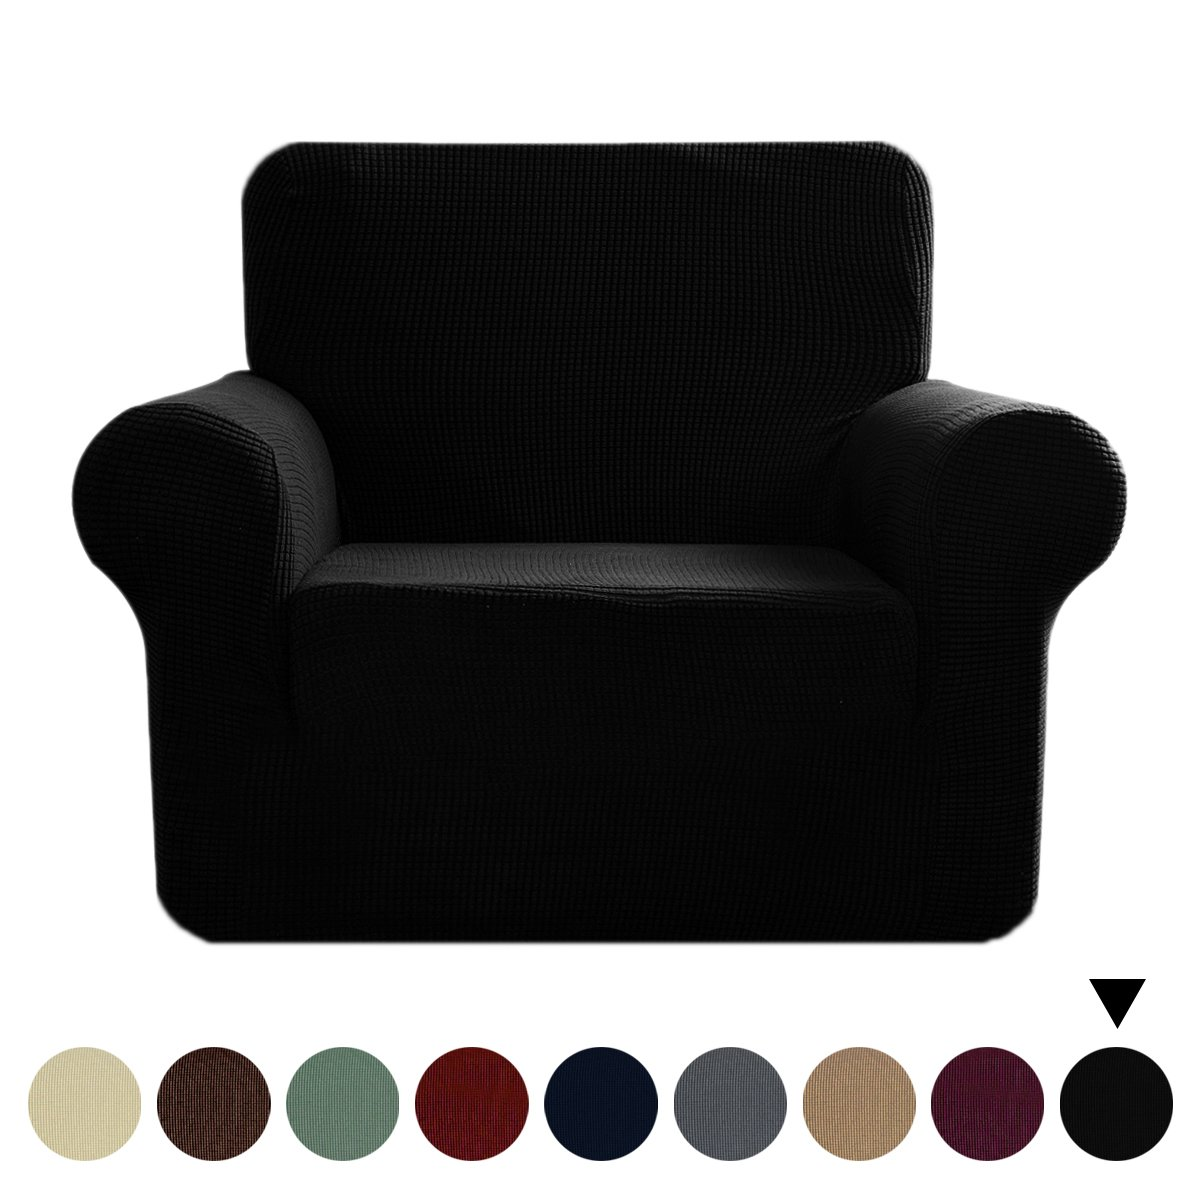 Jacquard Fit Stretch Sofa Cover - 1 Piece Elastic Furniture Protector Couch Cover, Polyester Spandex Soft Polar Fleece Plaid Non Slip Sofa Slipcovers (Armchair, Black)